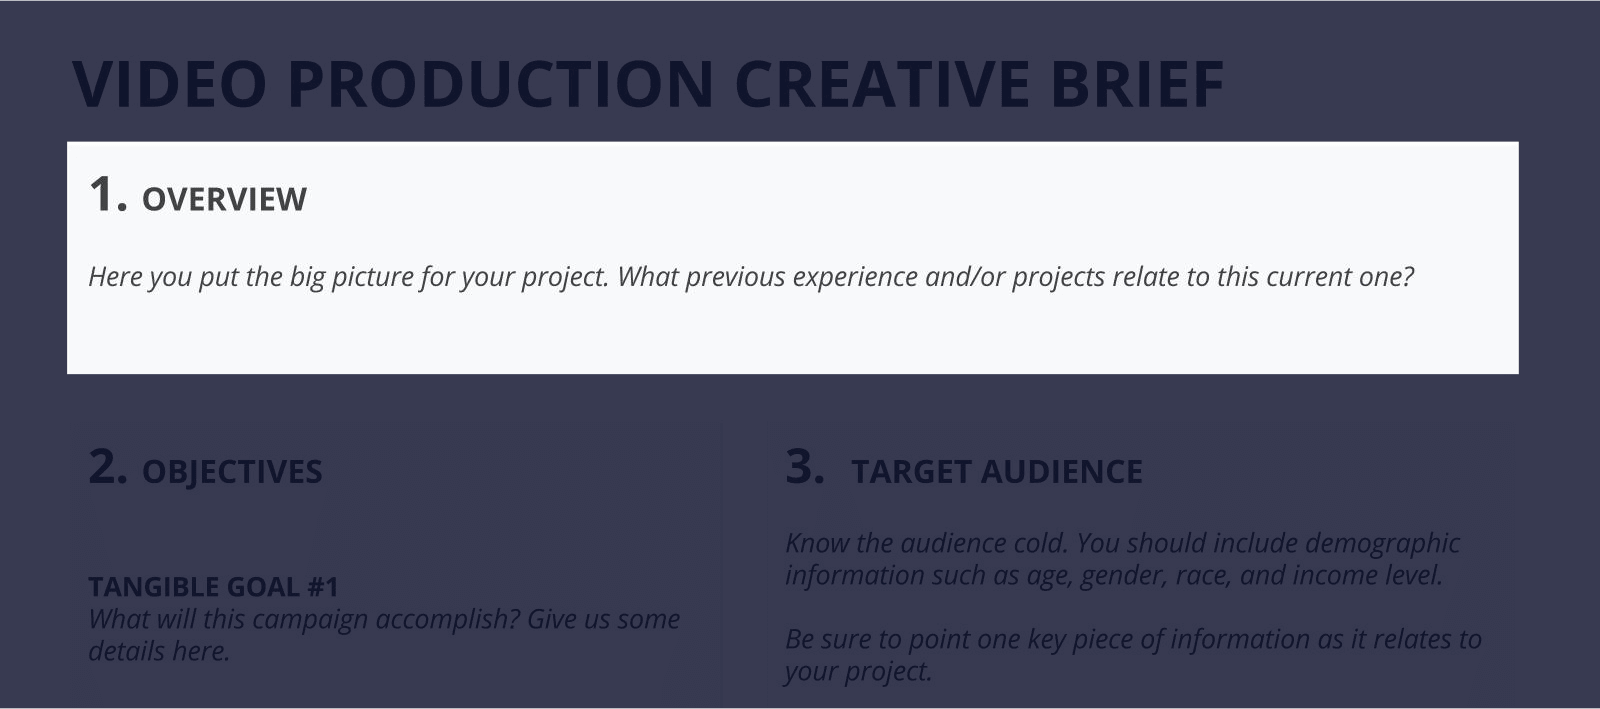 The Best Creative Brief Template For Video Agencies [Free Download]    Section 1